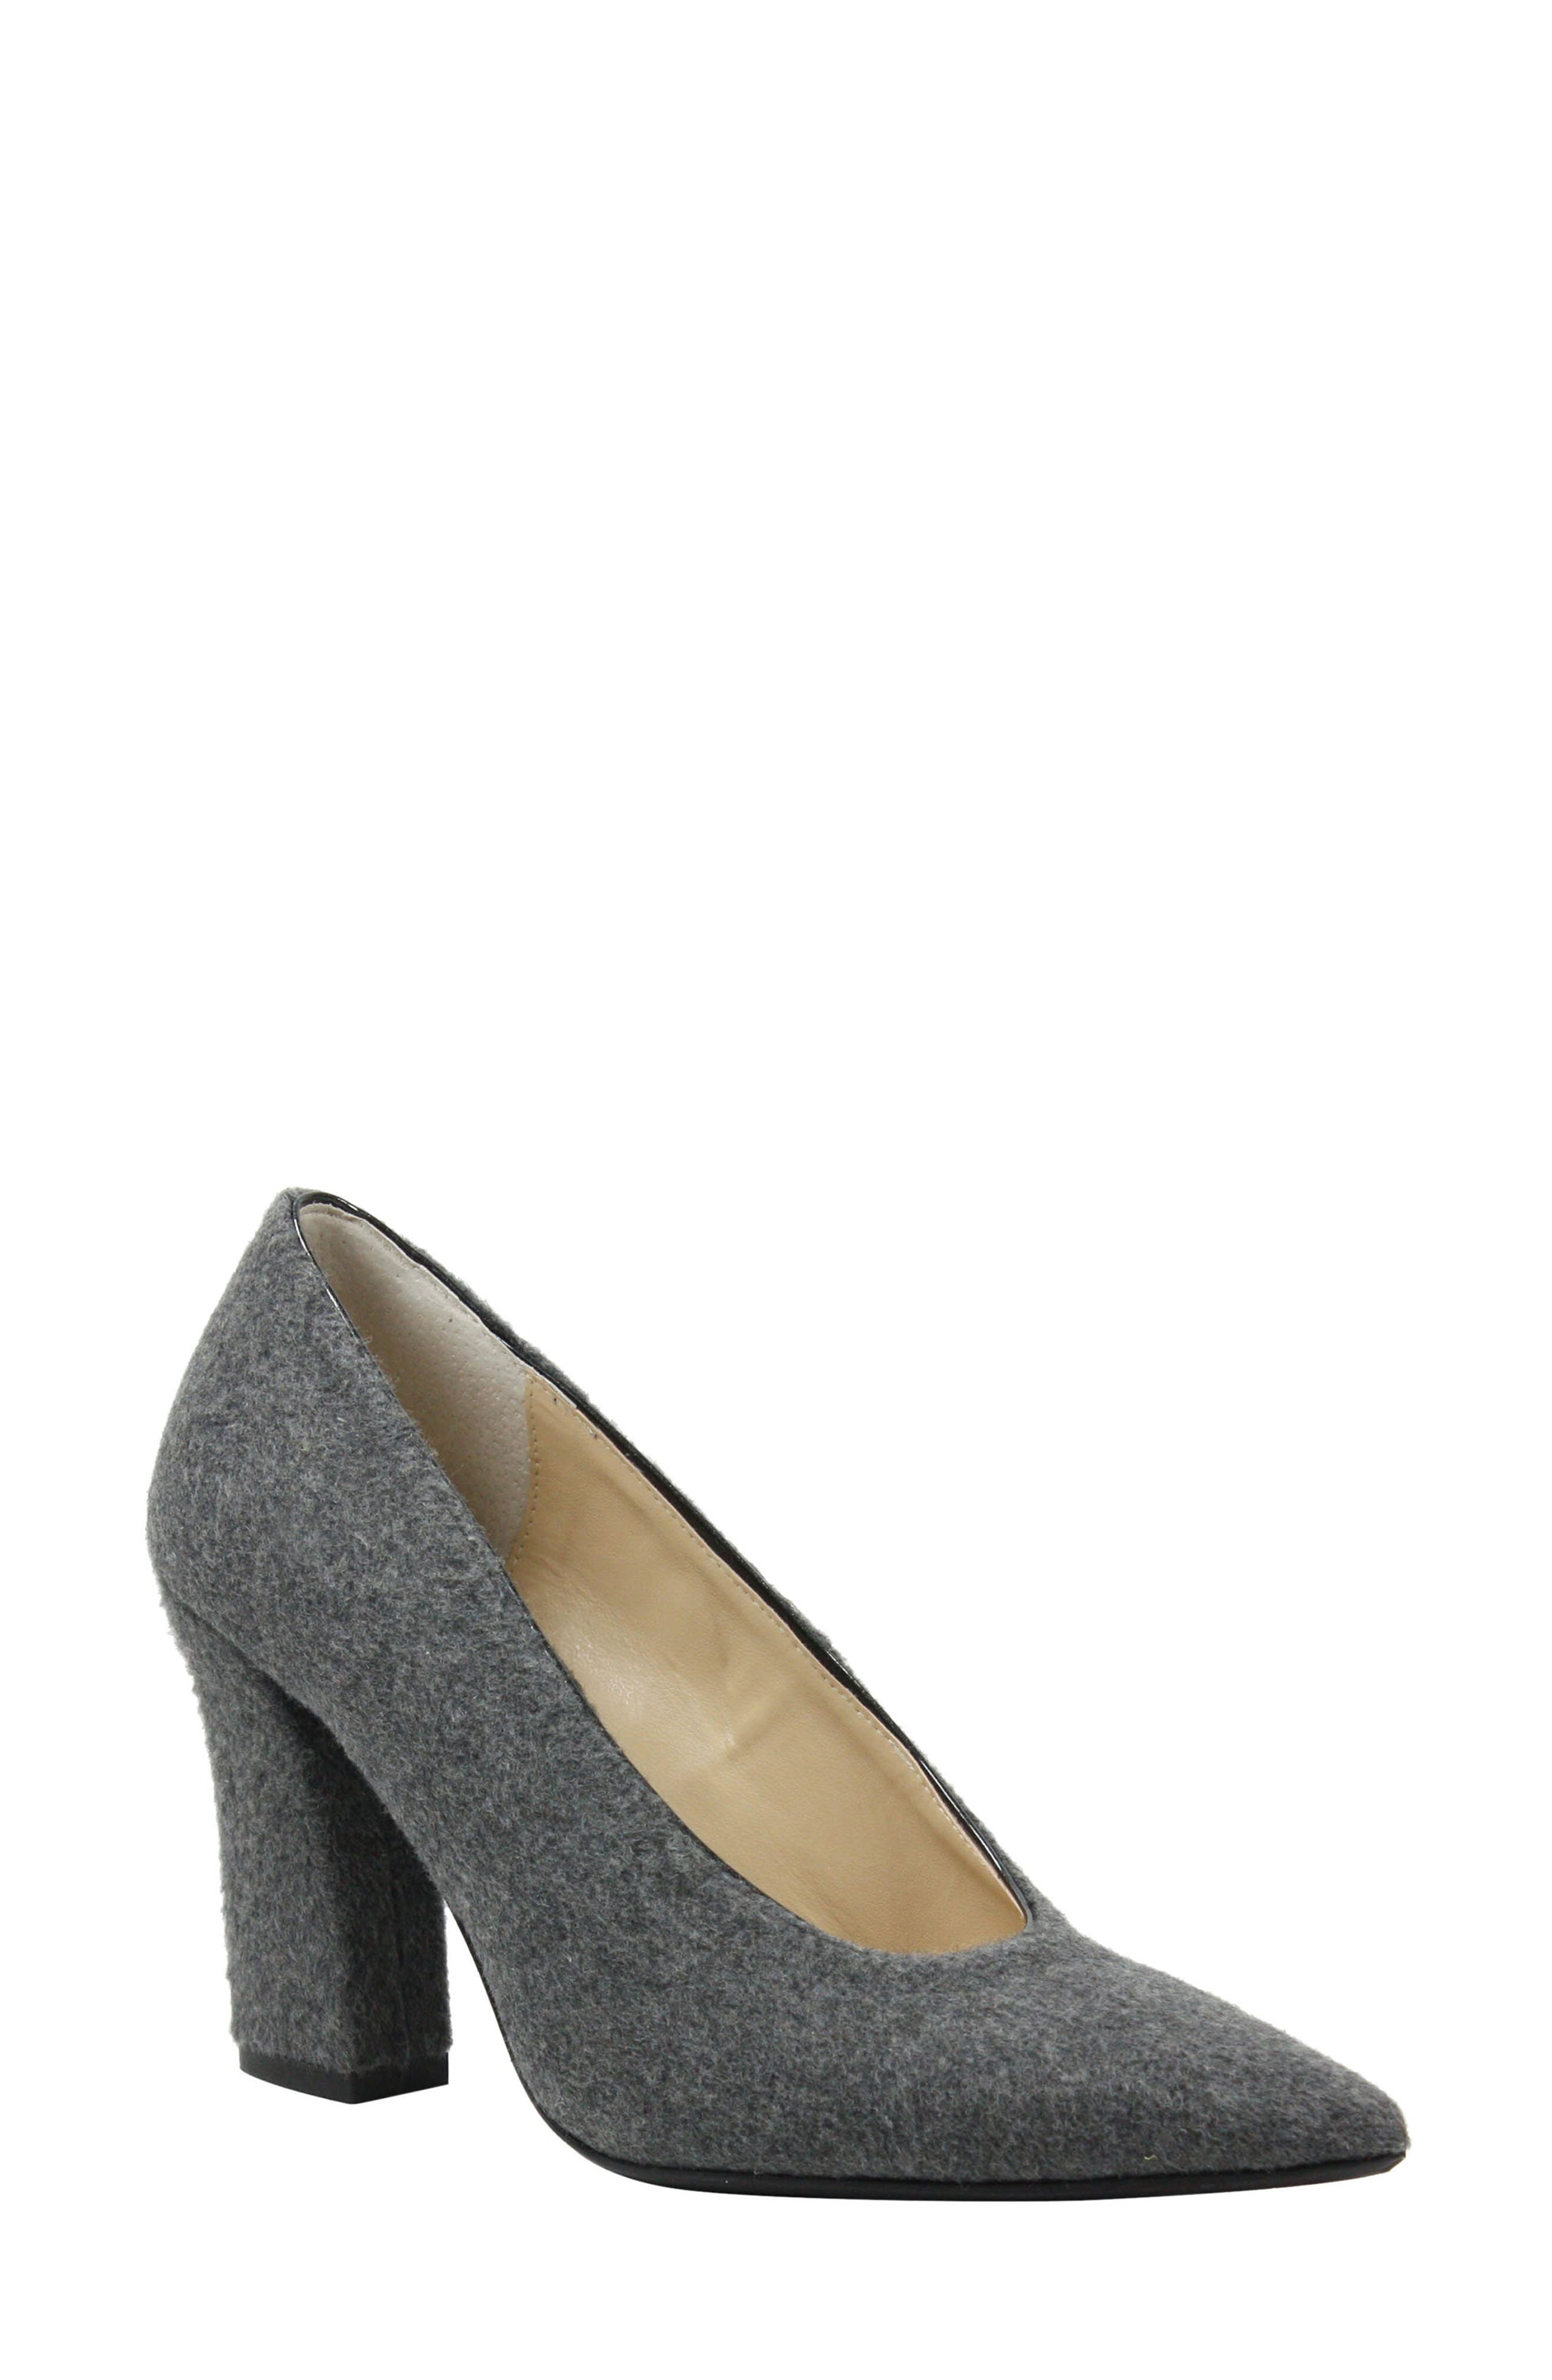 J. RENEÉ Madisson Pointy Toe Pump, Main, color, GREY FABRIC